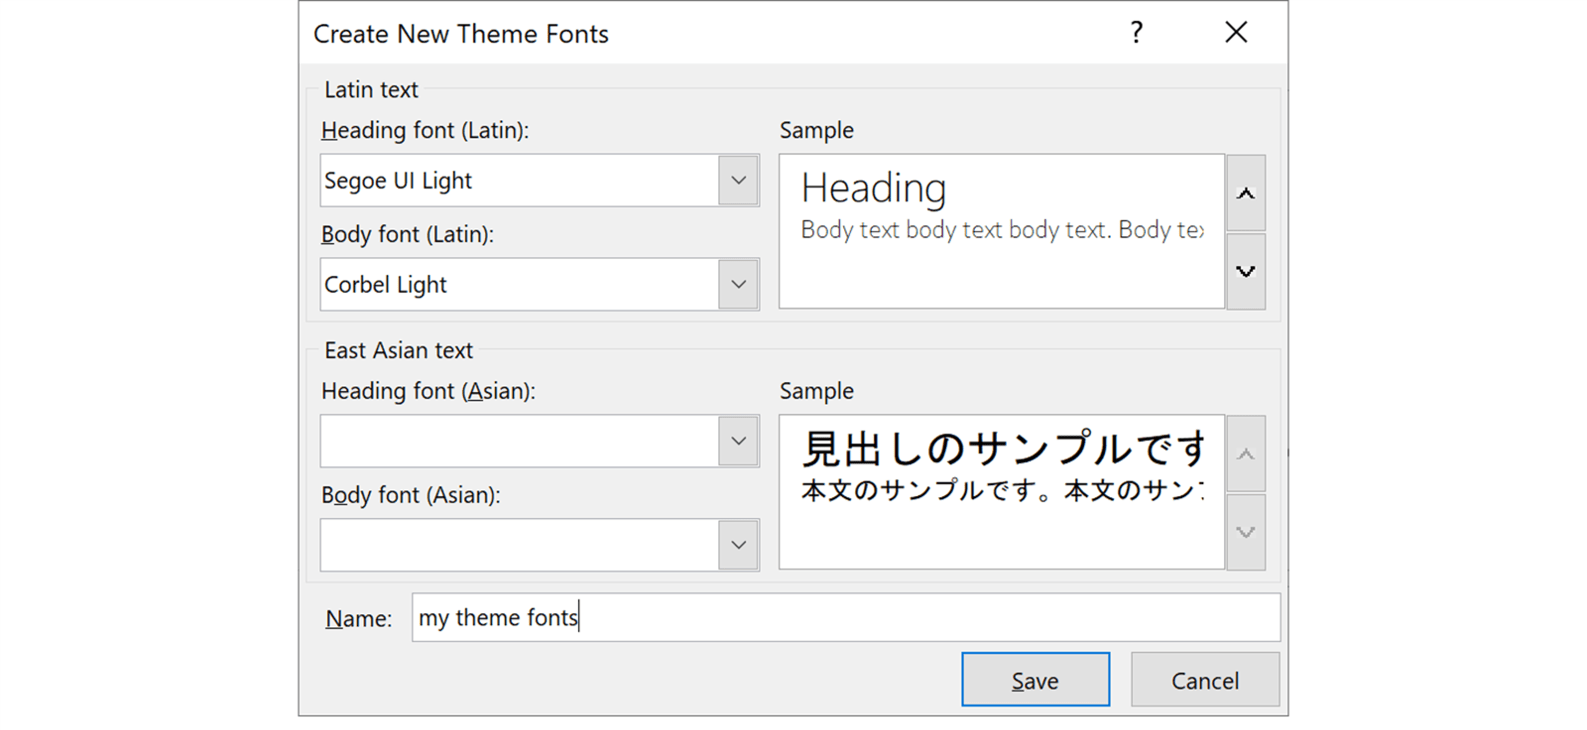 Screenshot of the Create New Theme Fonts pop up window in PowerPoint showing two languages